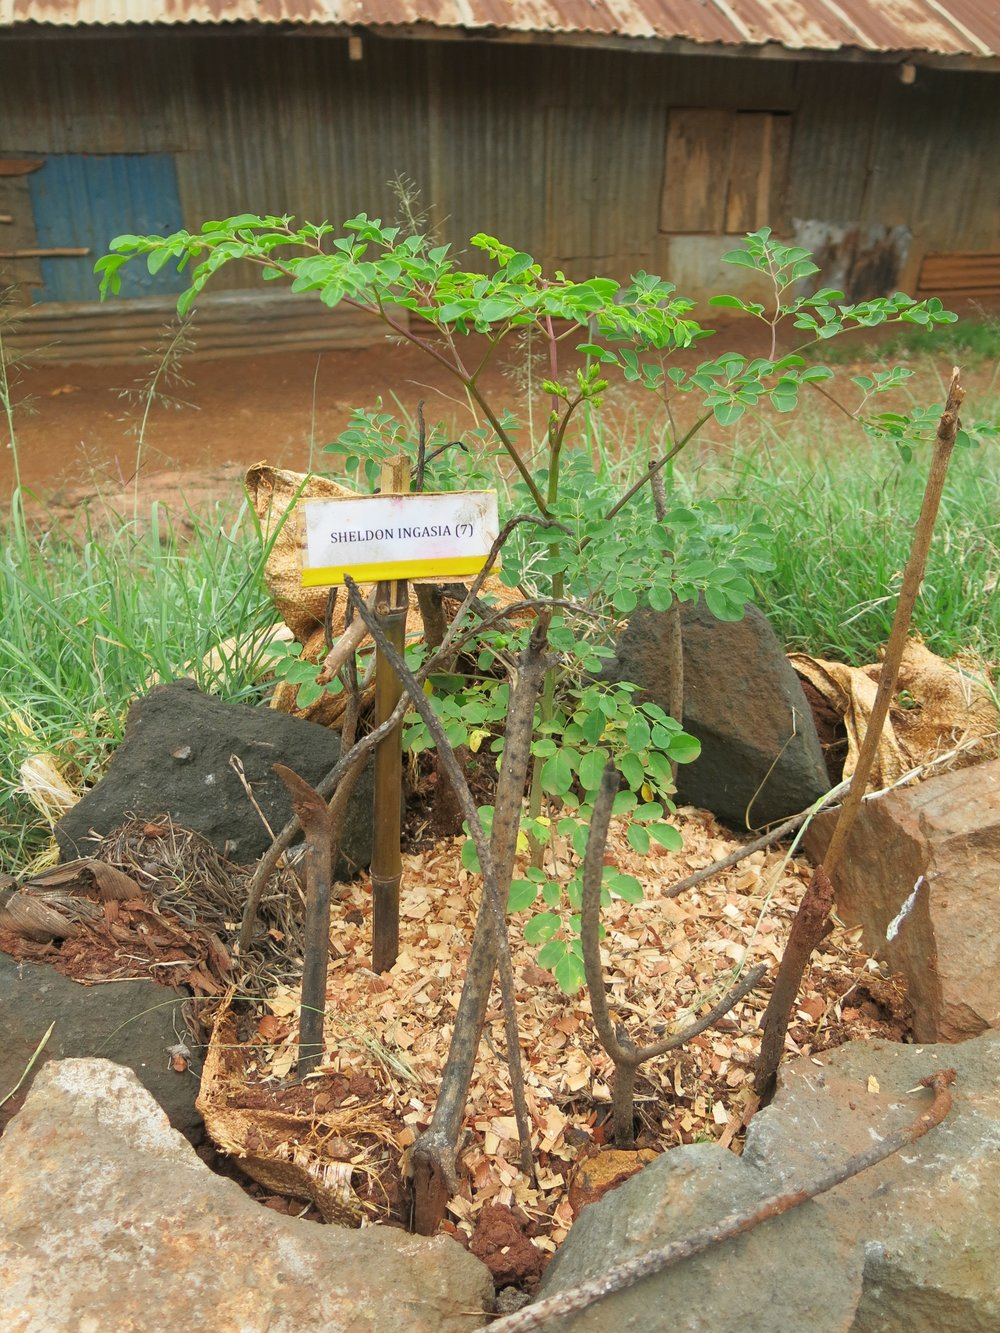 Above: Moringa tree with student name